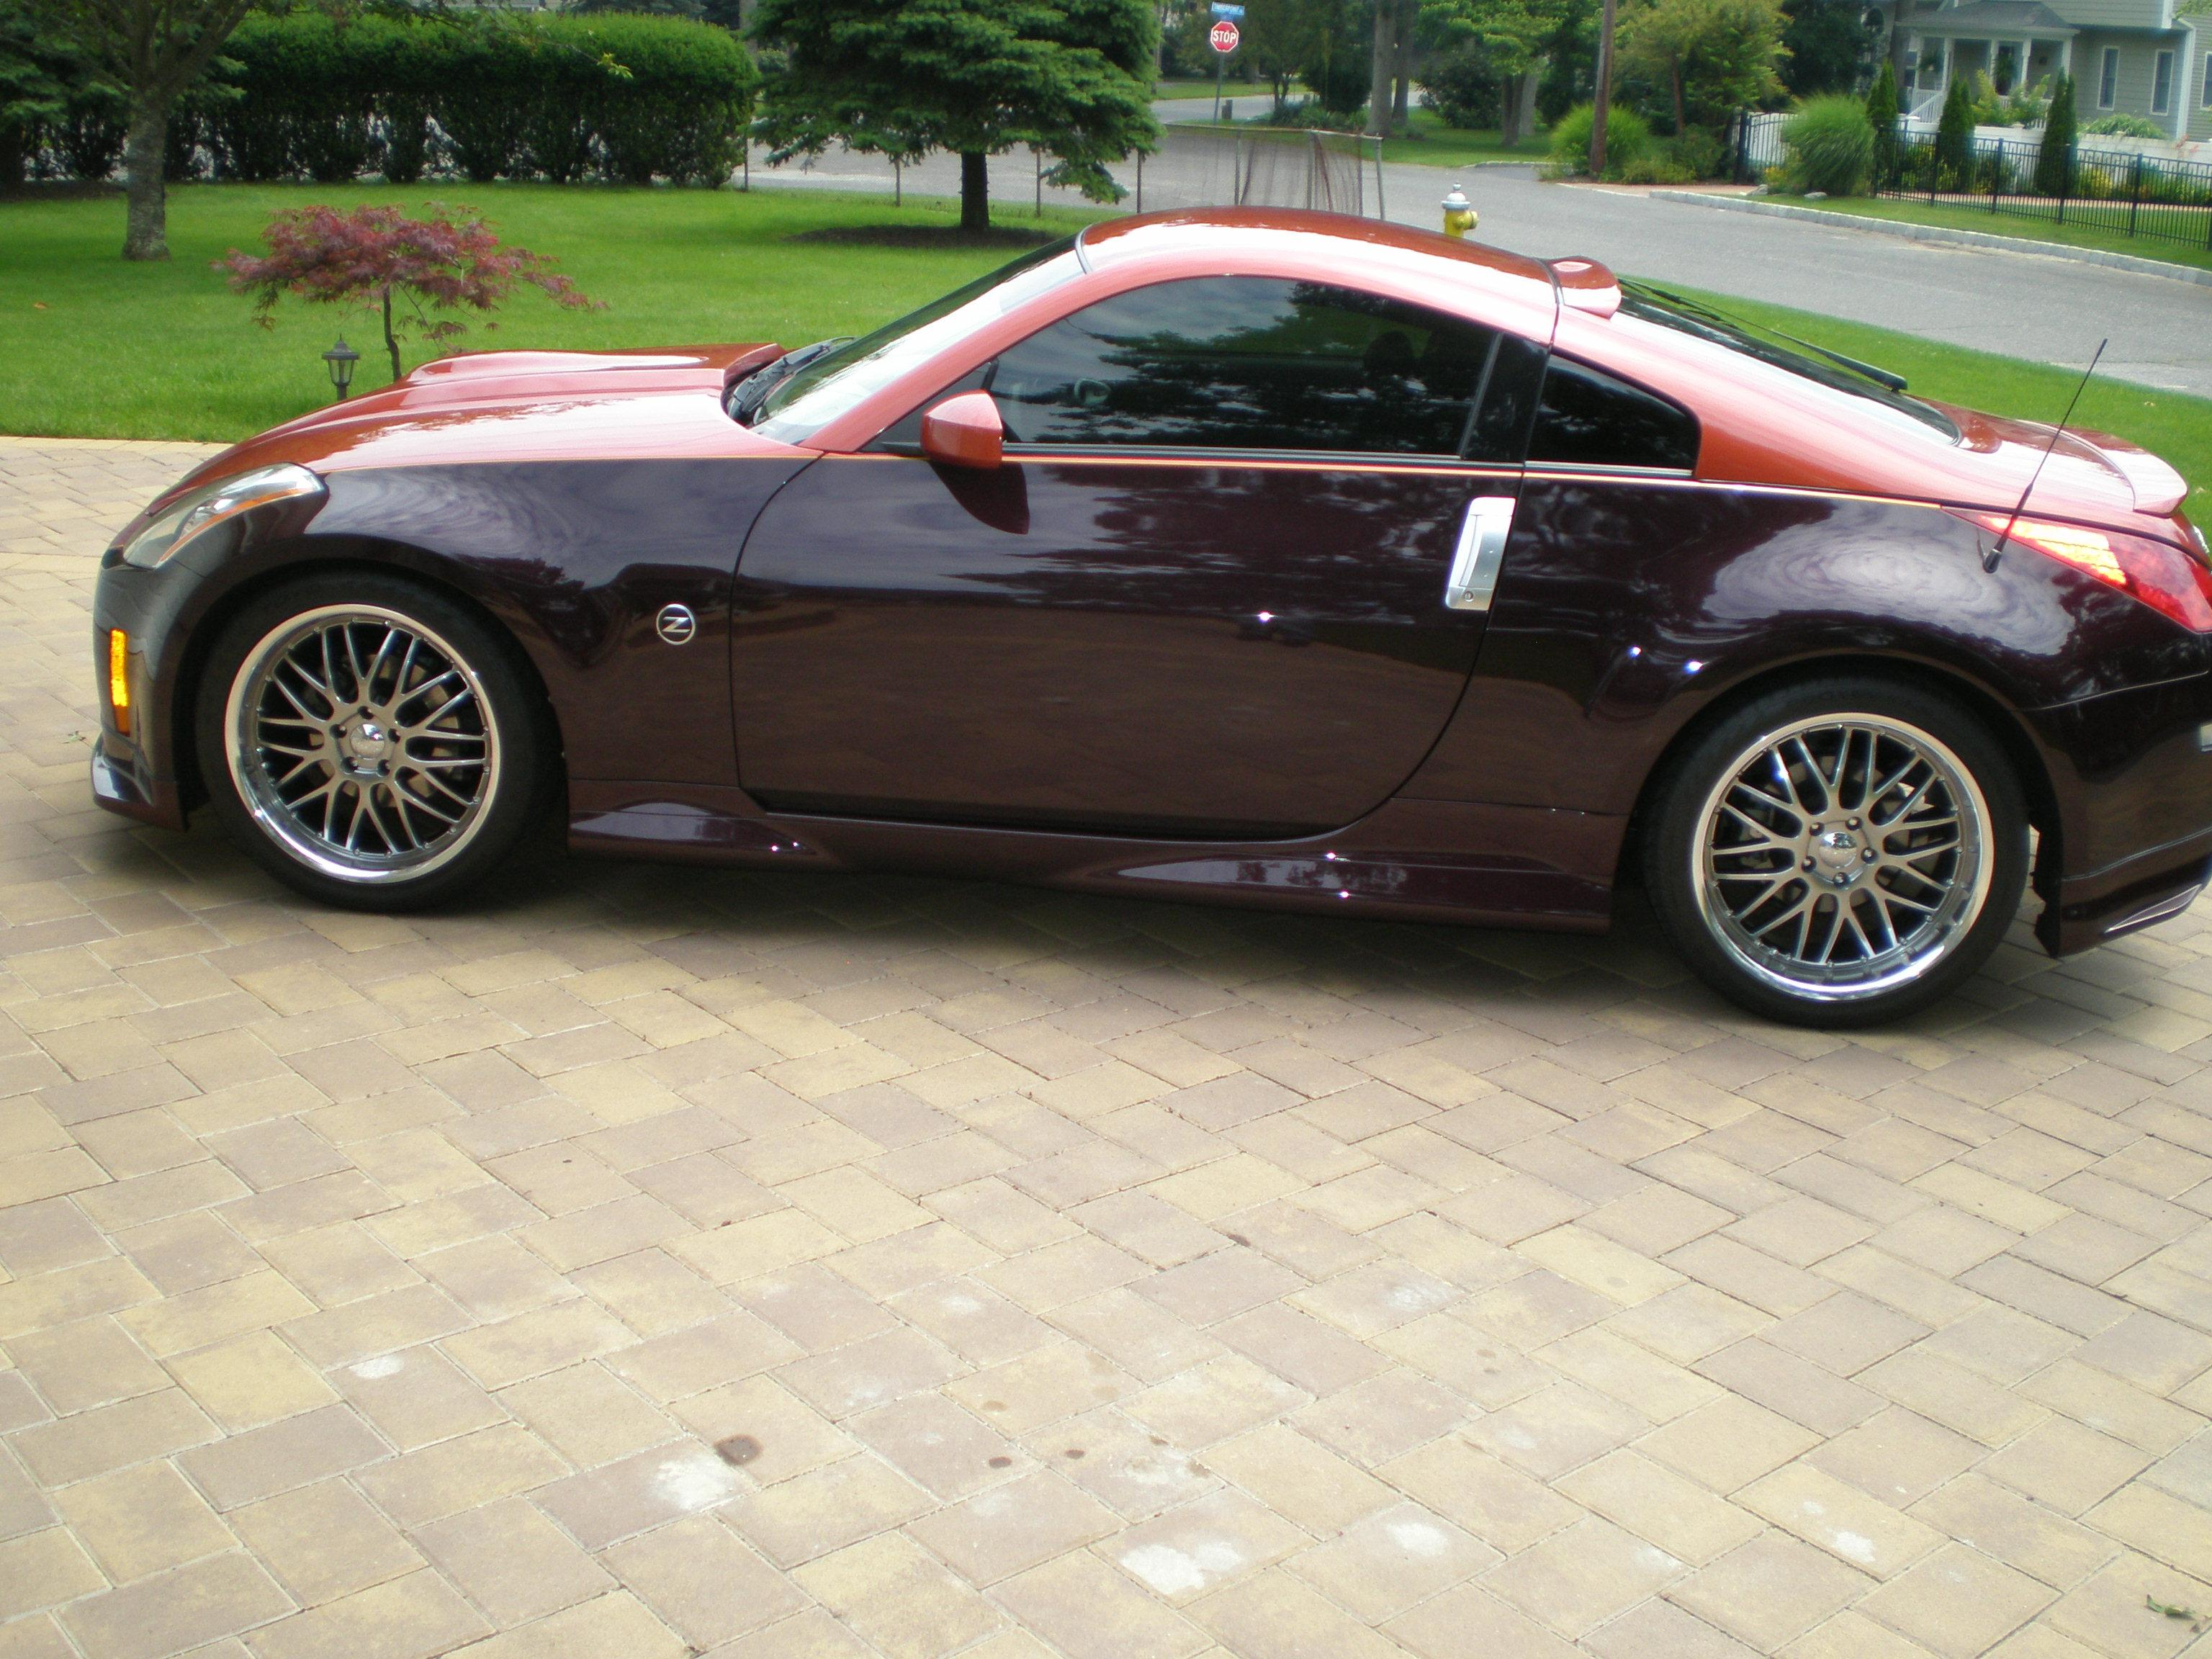 jdia561 39 s 2003 nissan 350z in palm springs fl. Black Bedroom Furniture Sets. Home Design Ideas